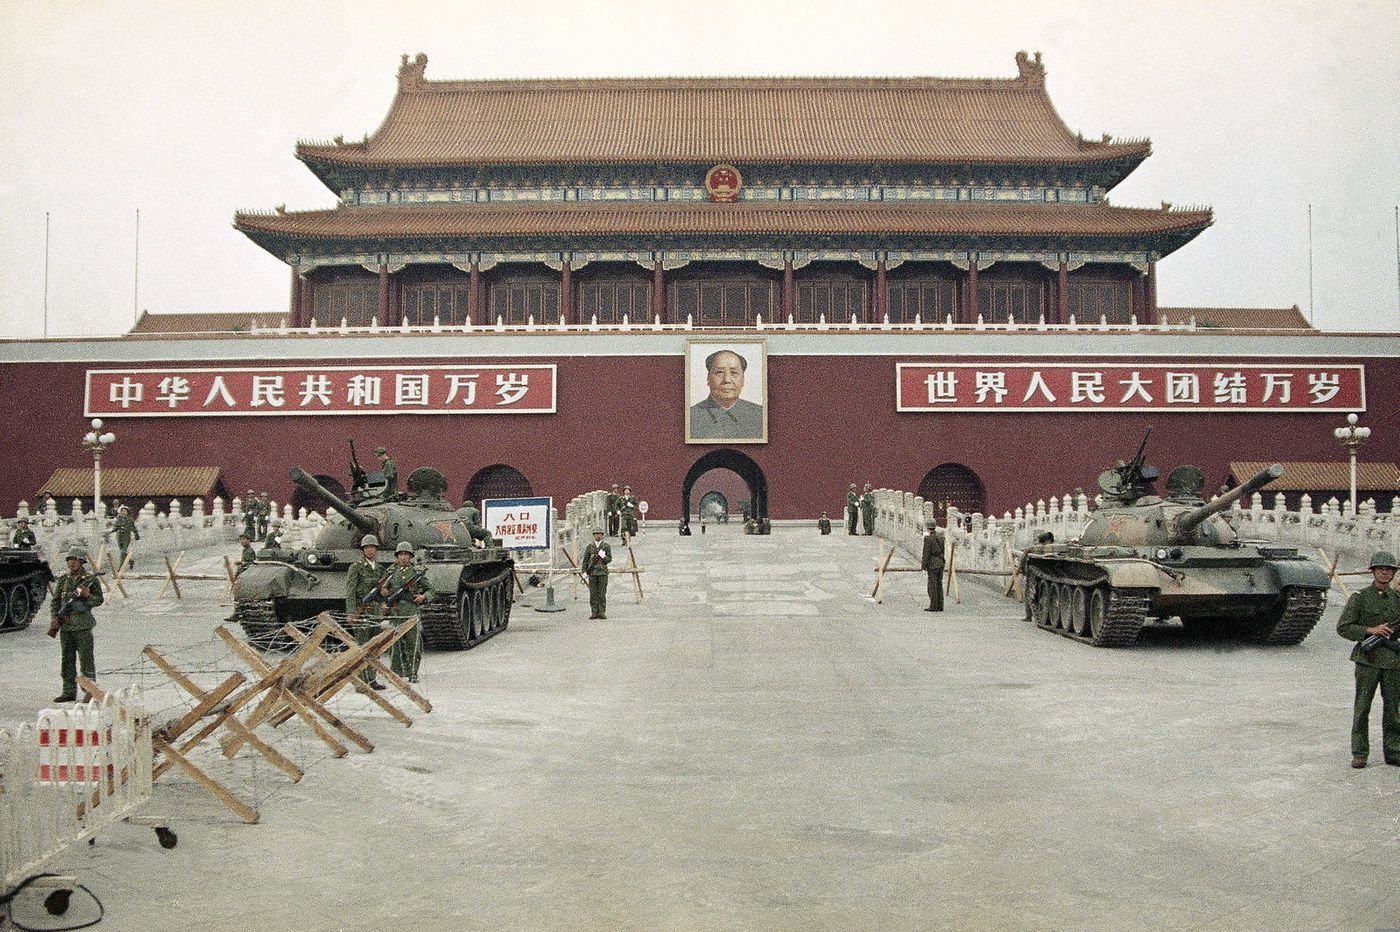 Prosperity, repression mark China 30 years after Tiananmen Square